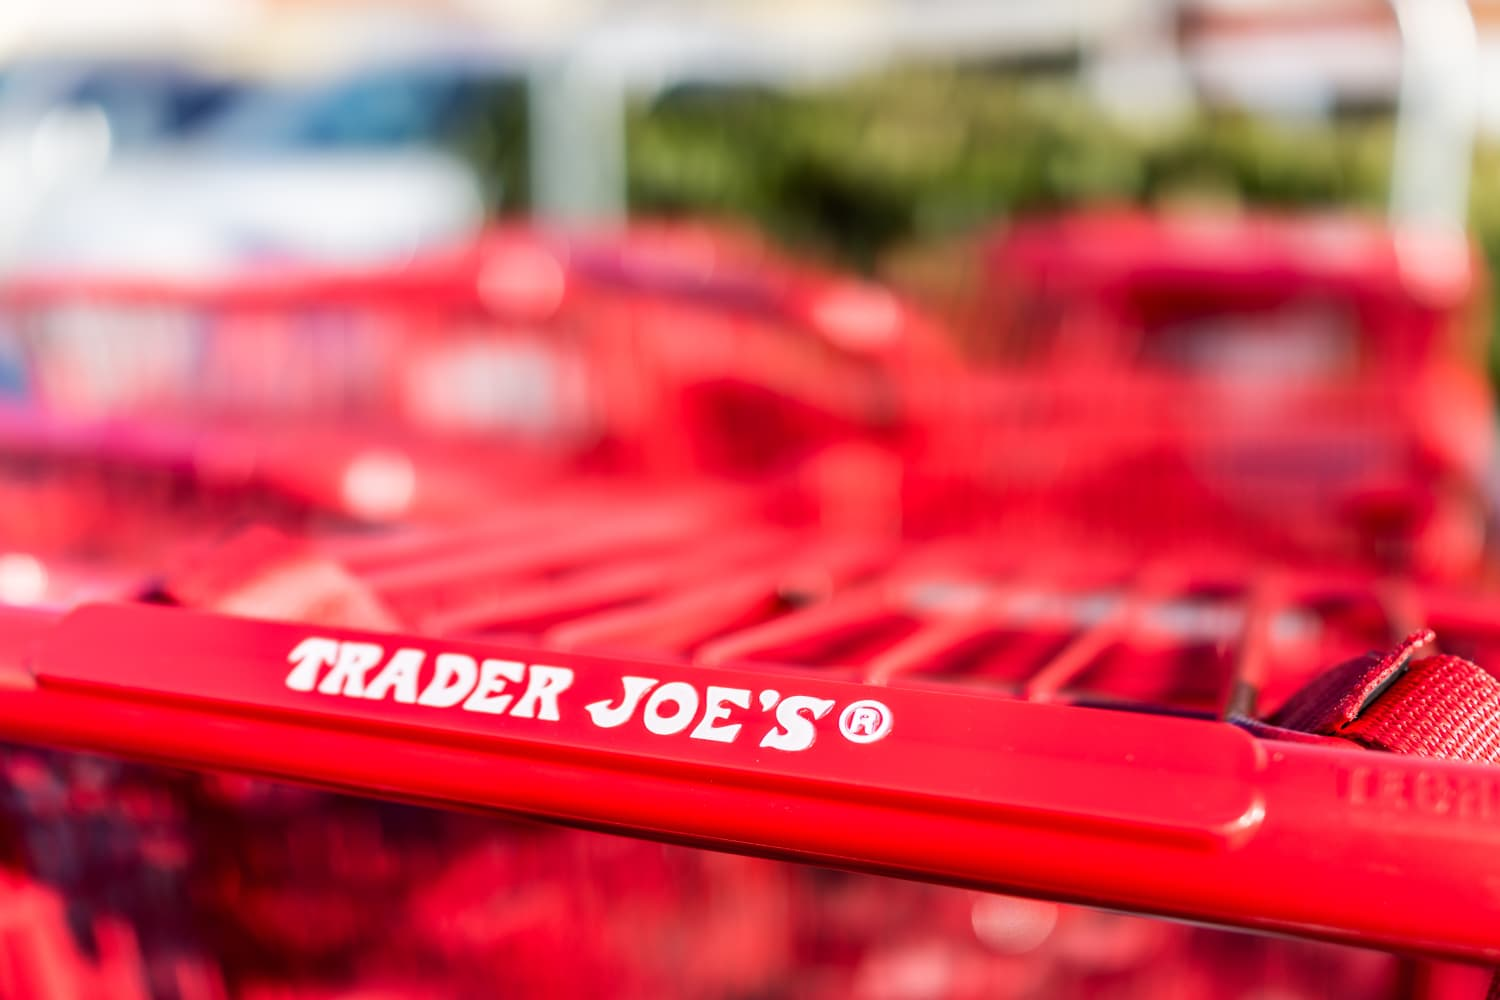 17 Products Trader Joe's Employees Are Excited About for the Holidays